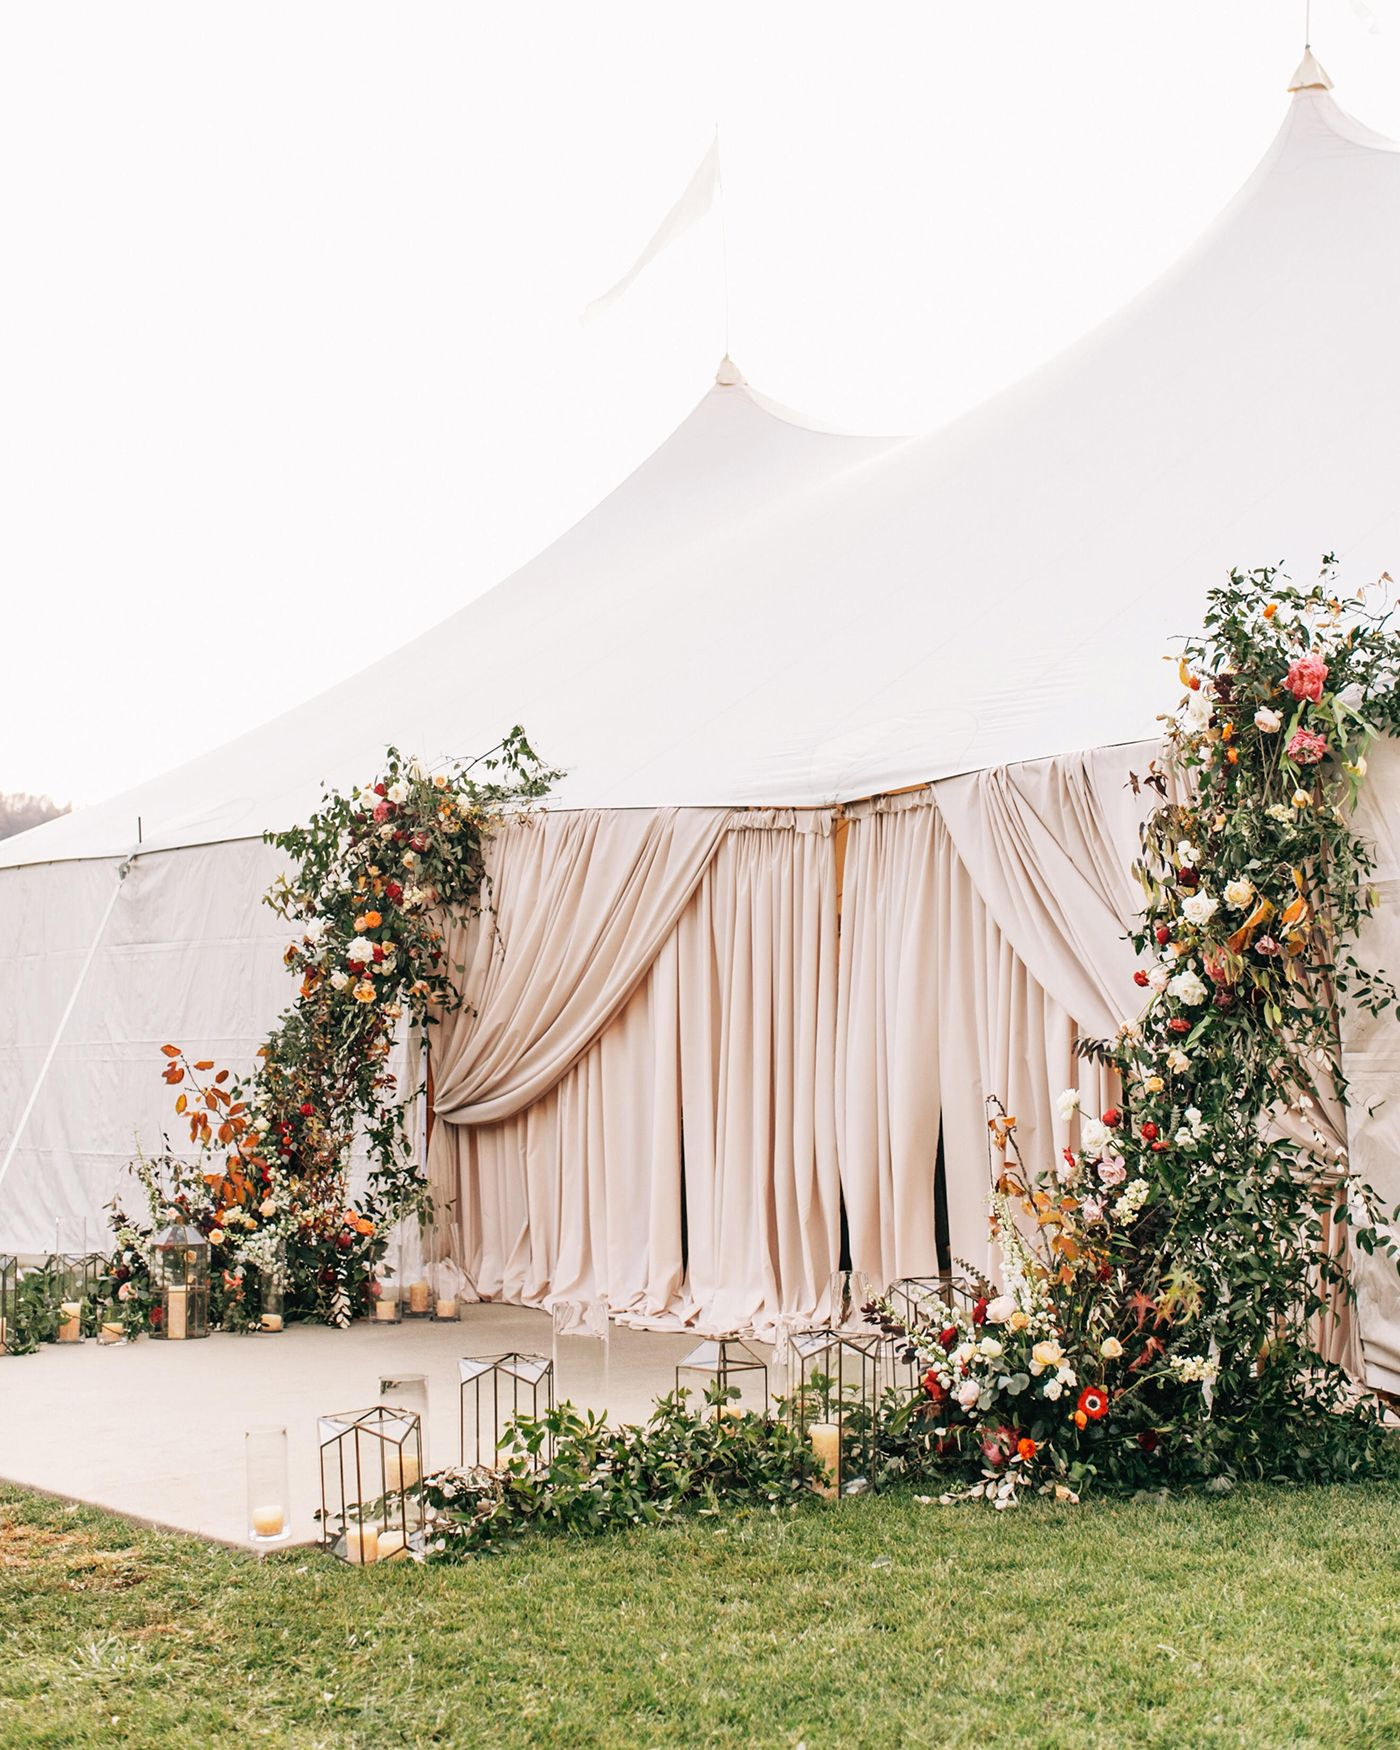 15 Magical Tent Decor Ideas For An Outdoor Wedding